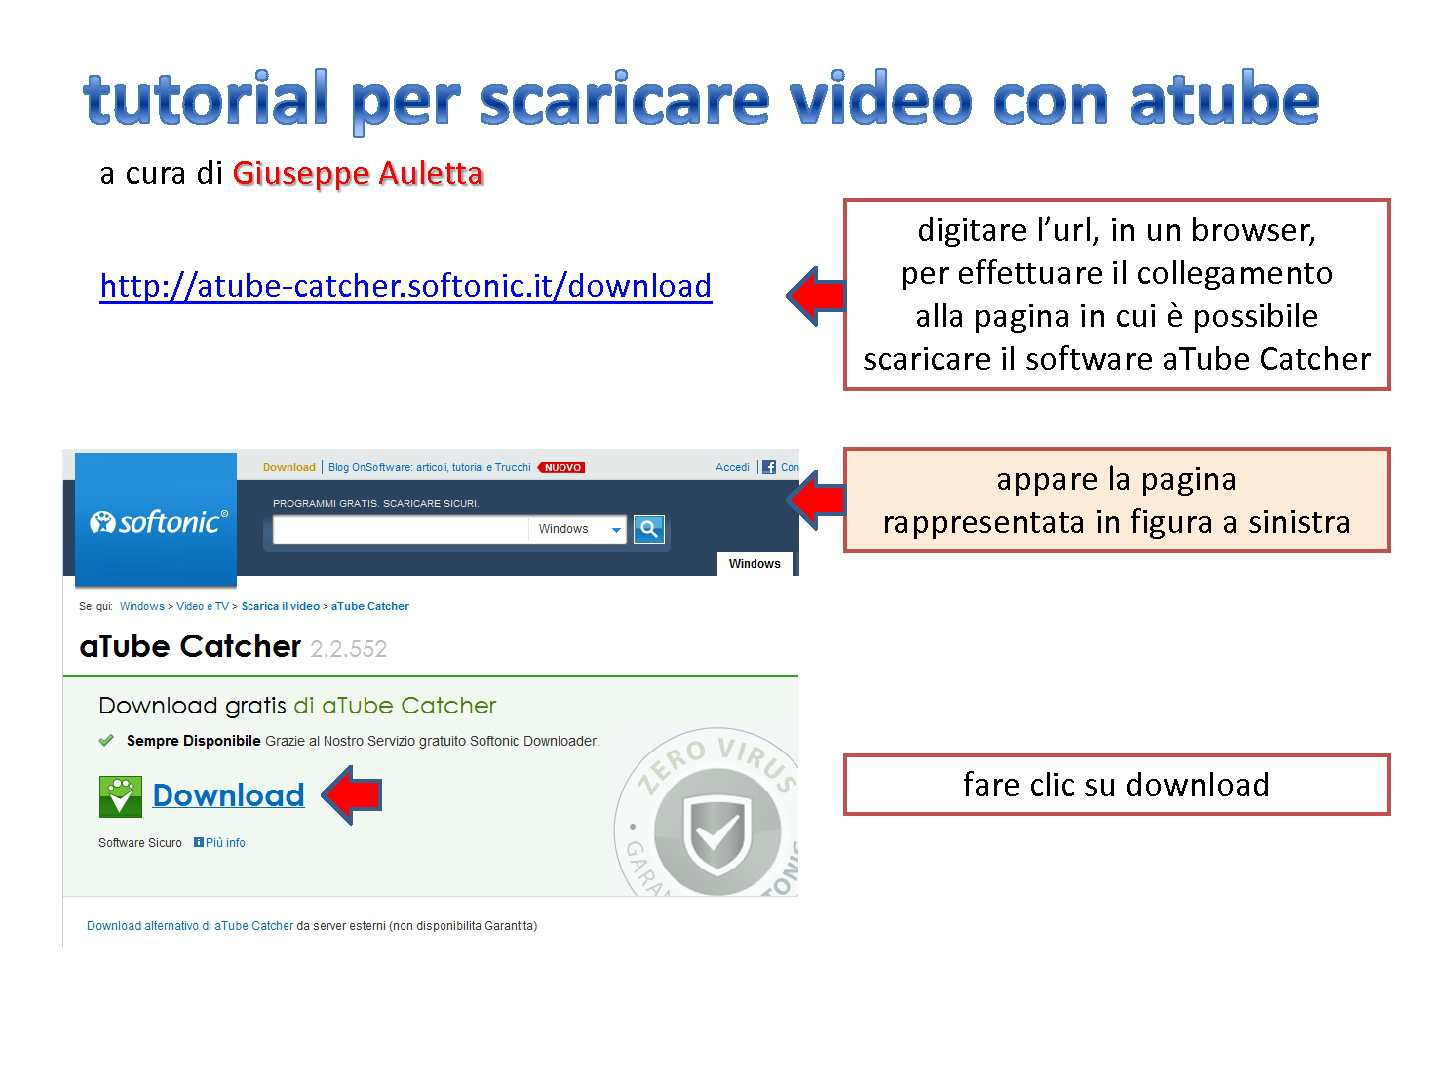 Download atube catcher free softonic | aTube Catcher 3 8